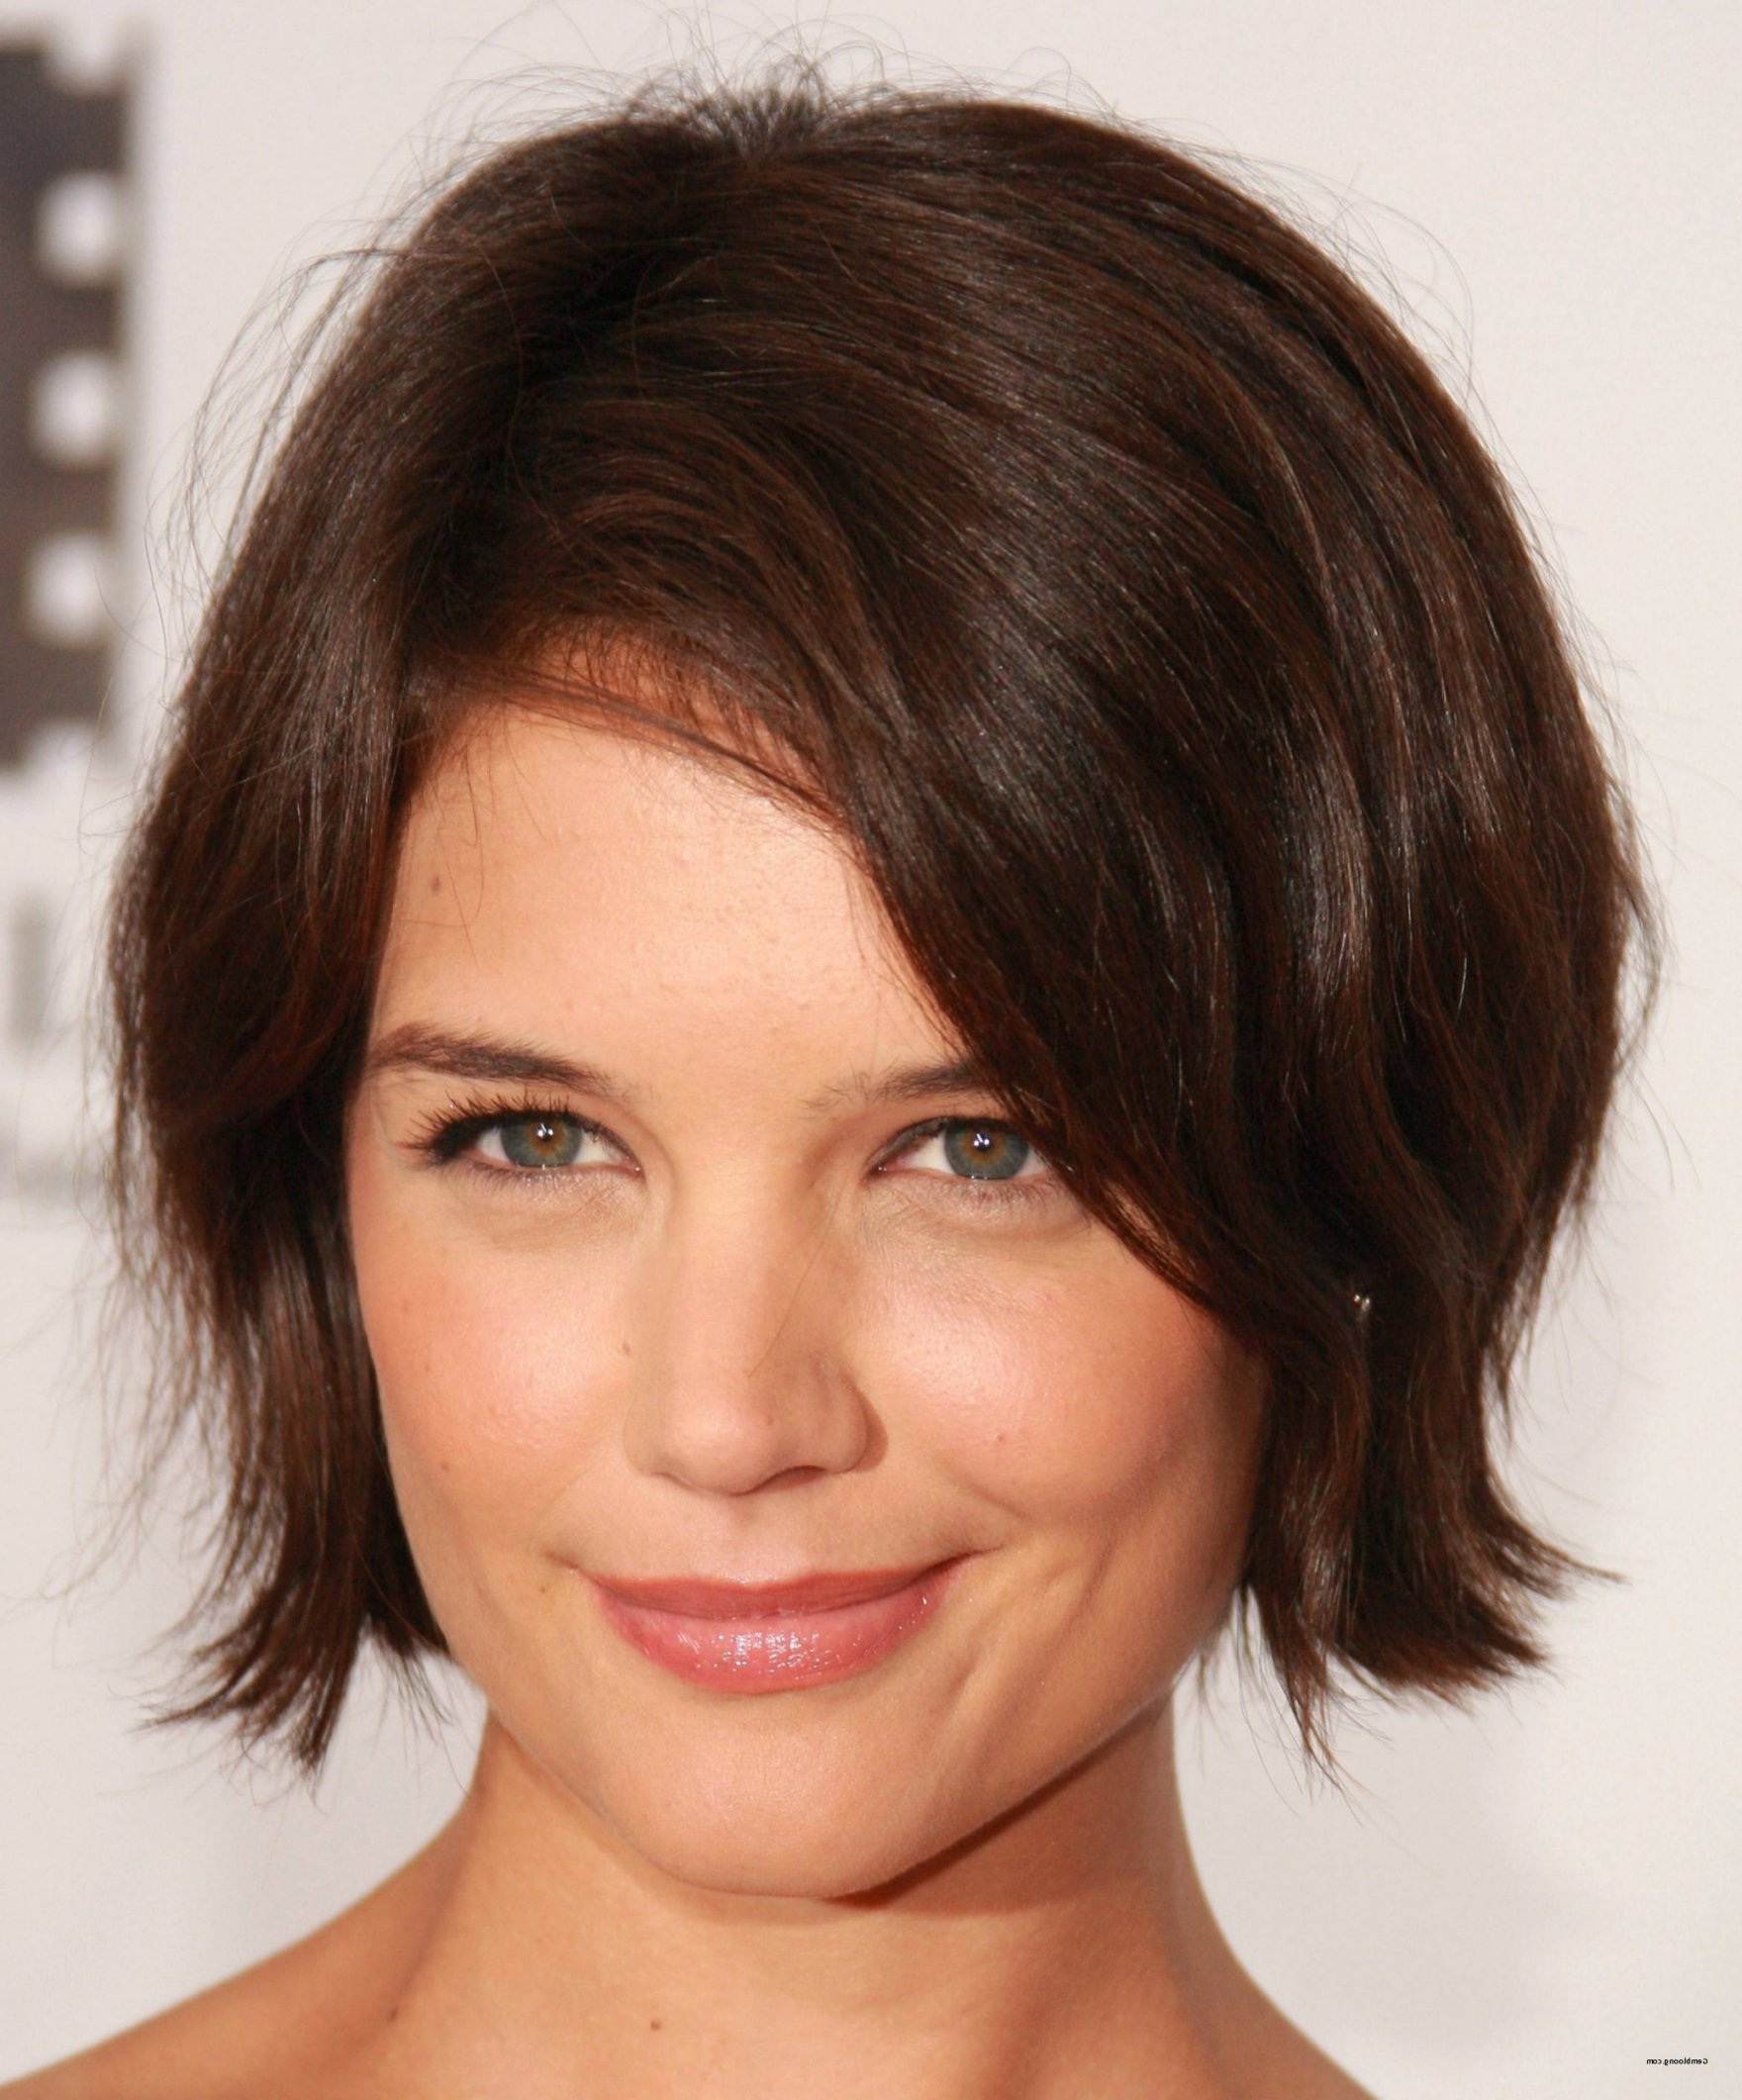 Hairstyles For Thick Hair And Round Faces » Best Hairstyles Intended For Short Hairstyles For Heavy Round Faces (View 7 of 25)